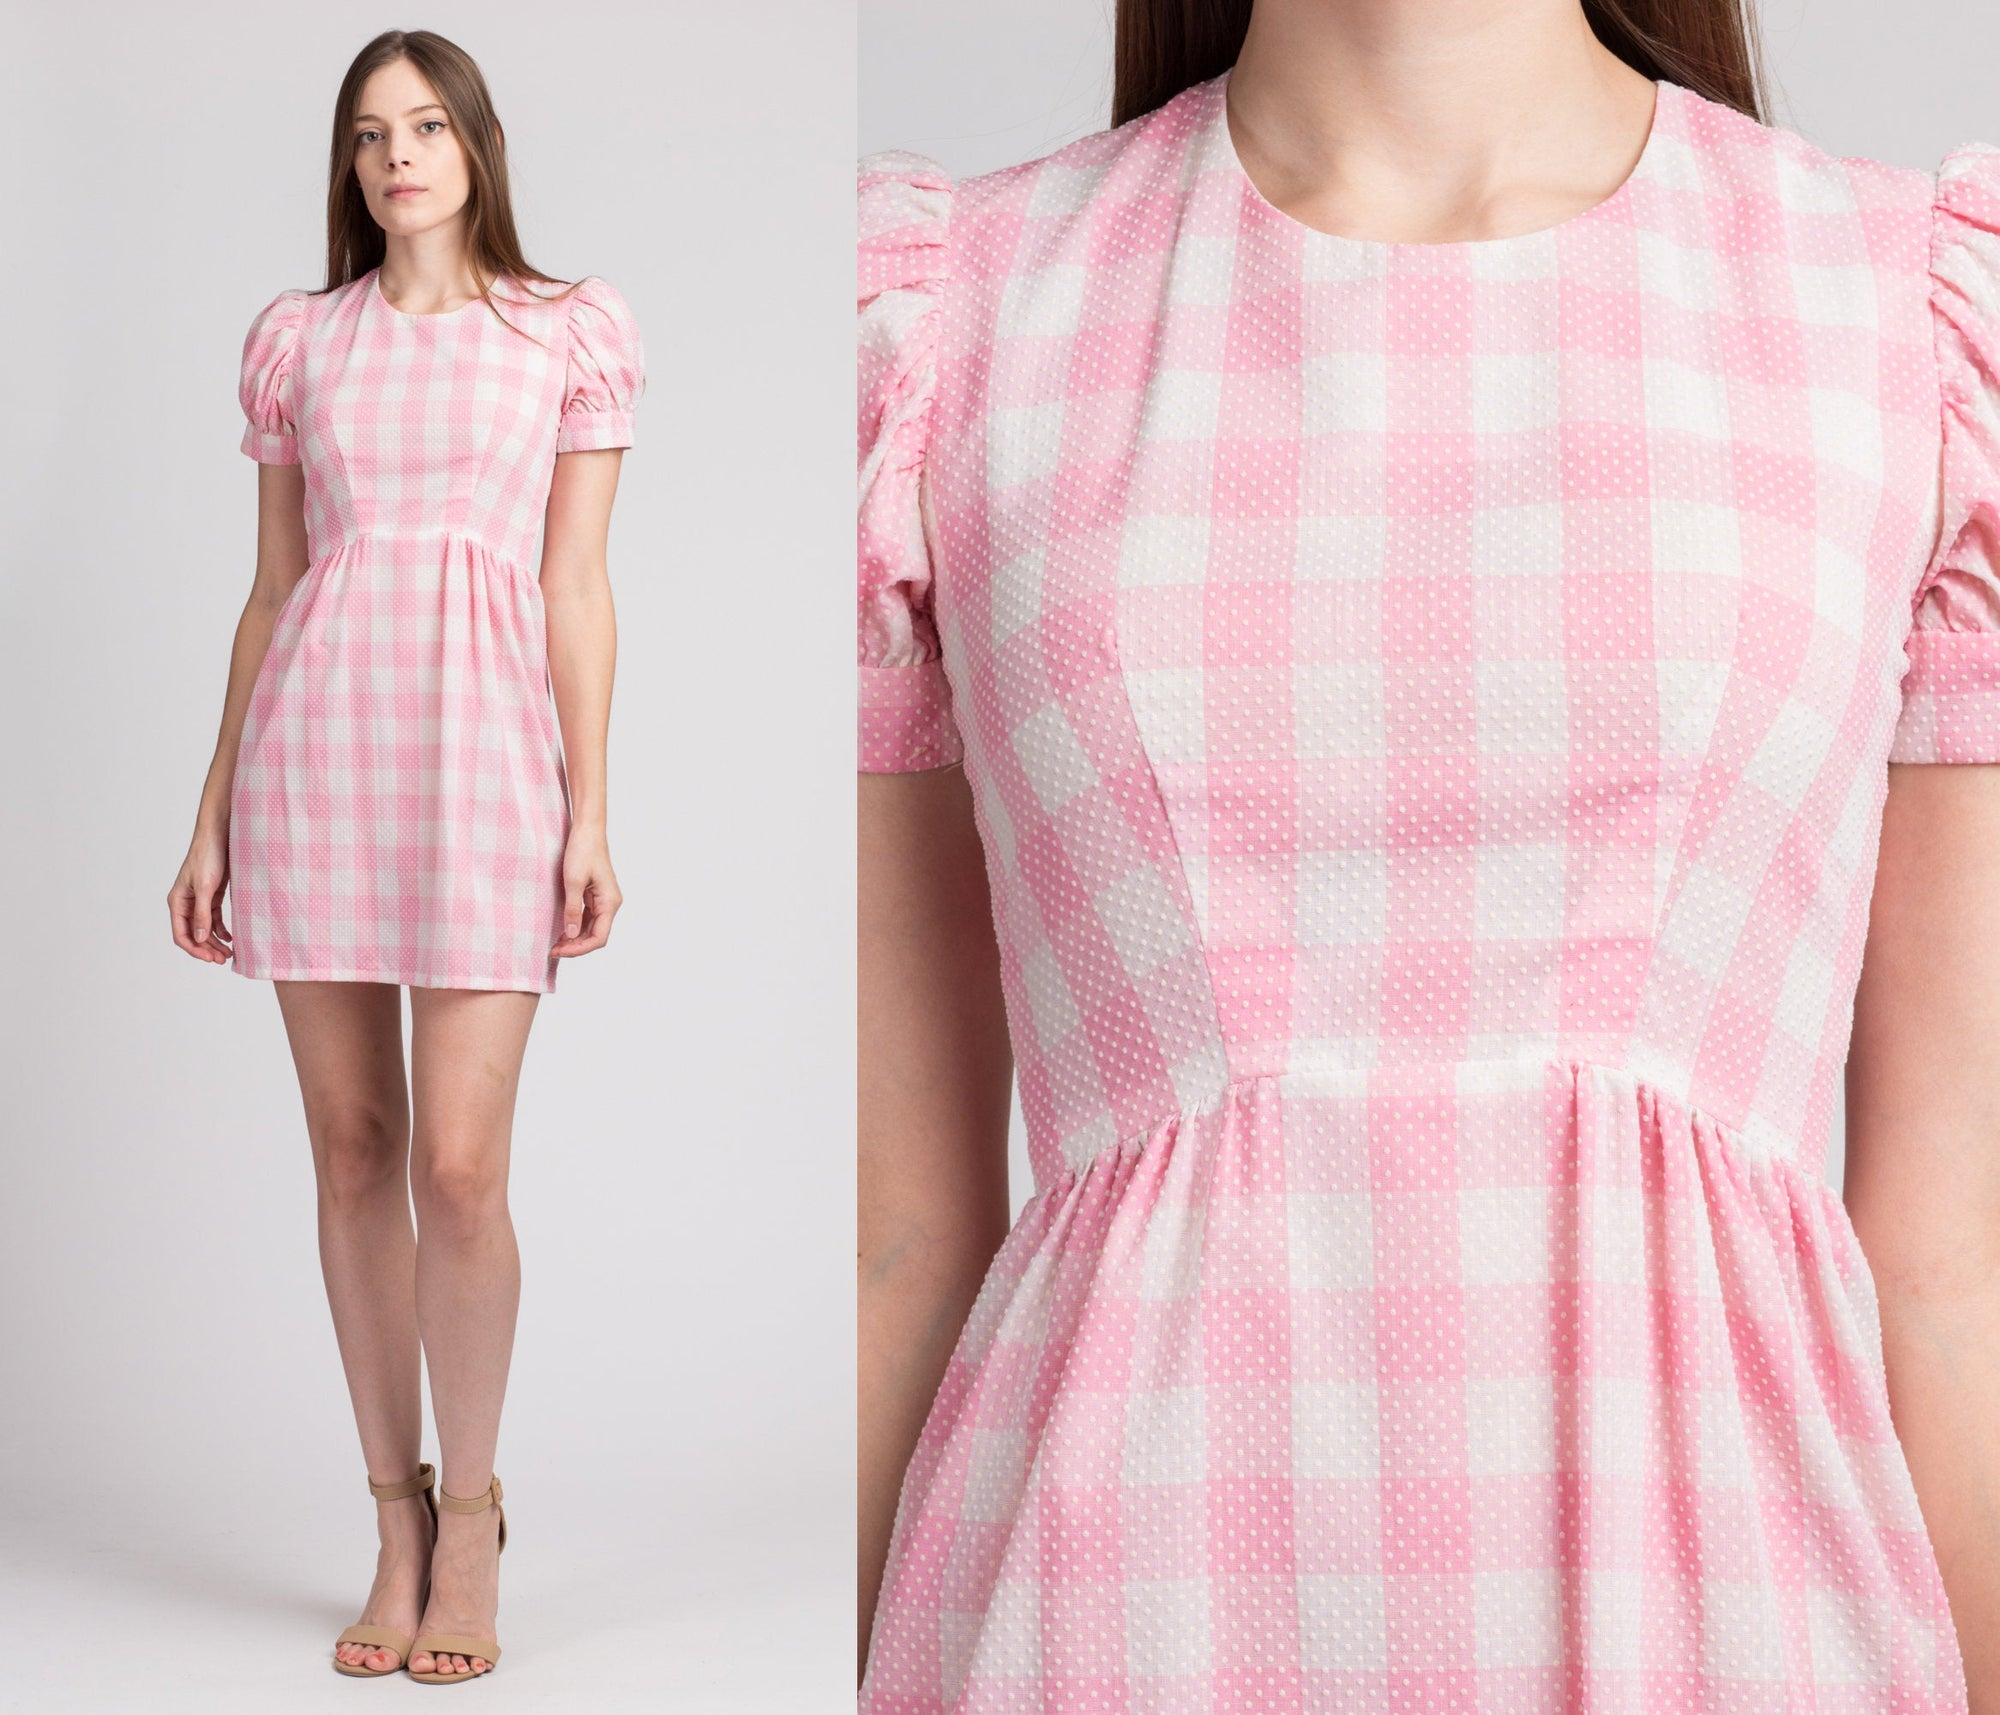 60s Pink & White Gingham Babydoll Mini Dress - Extra Small